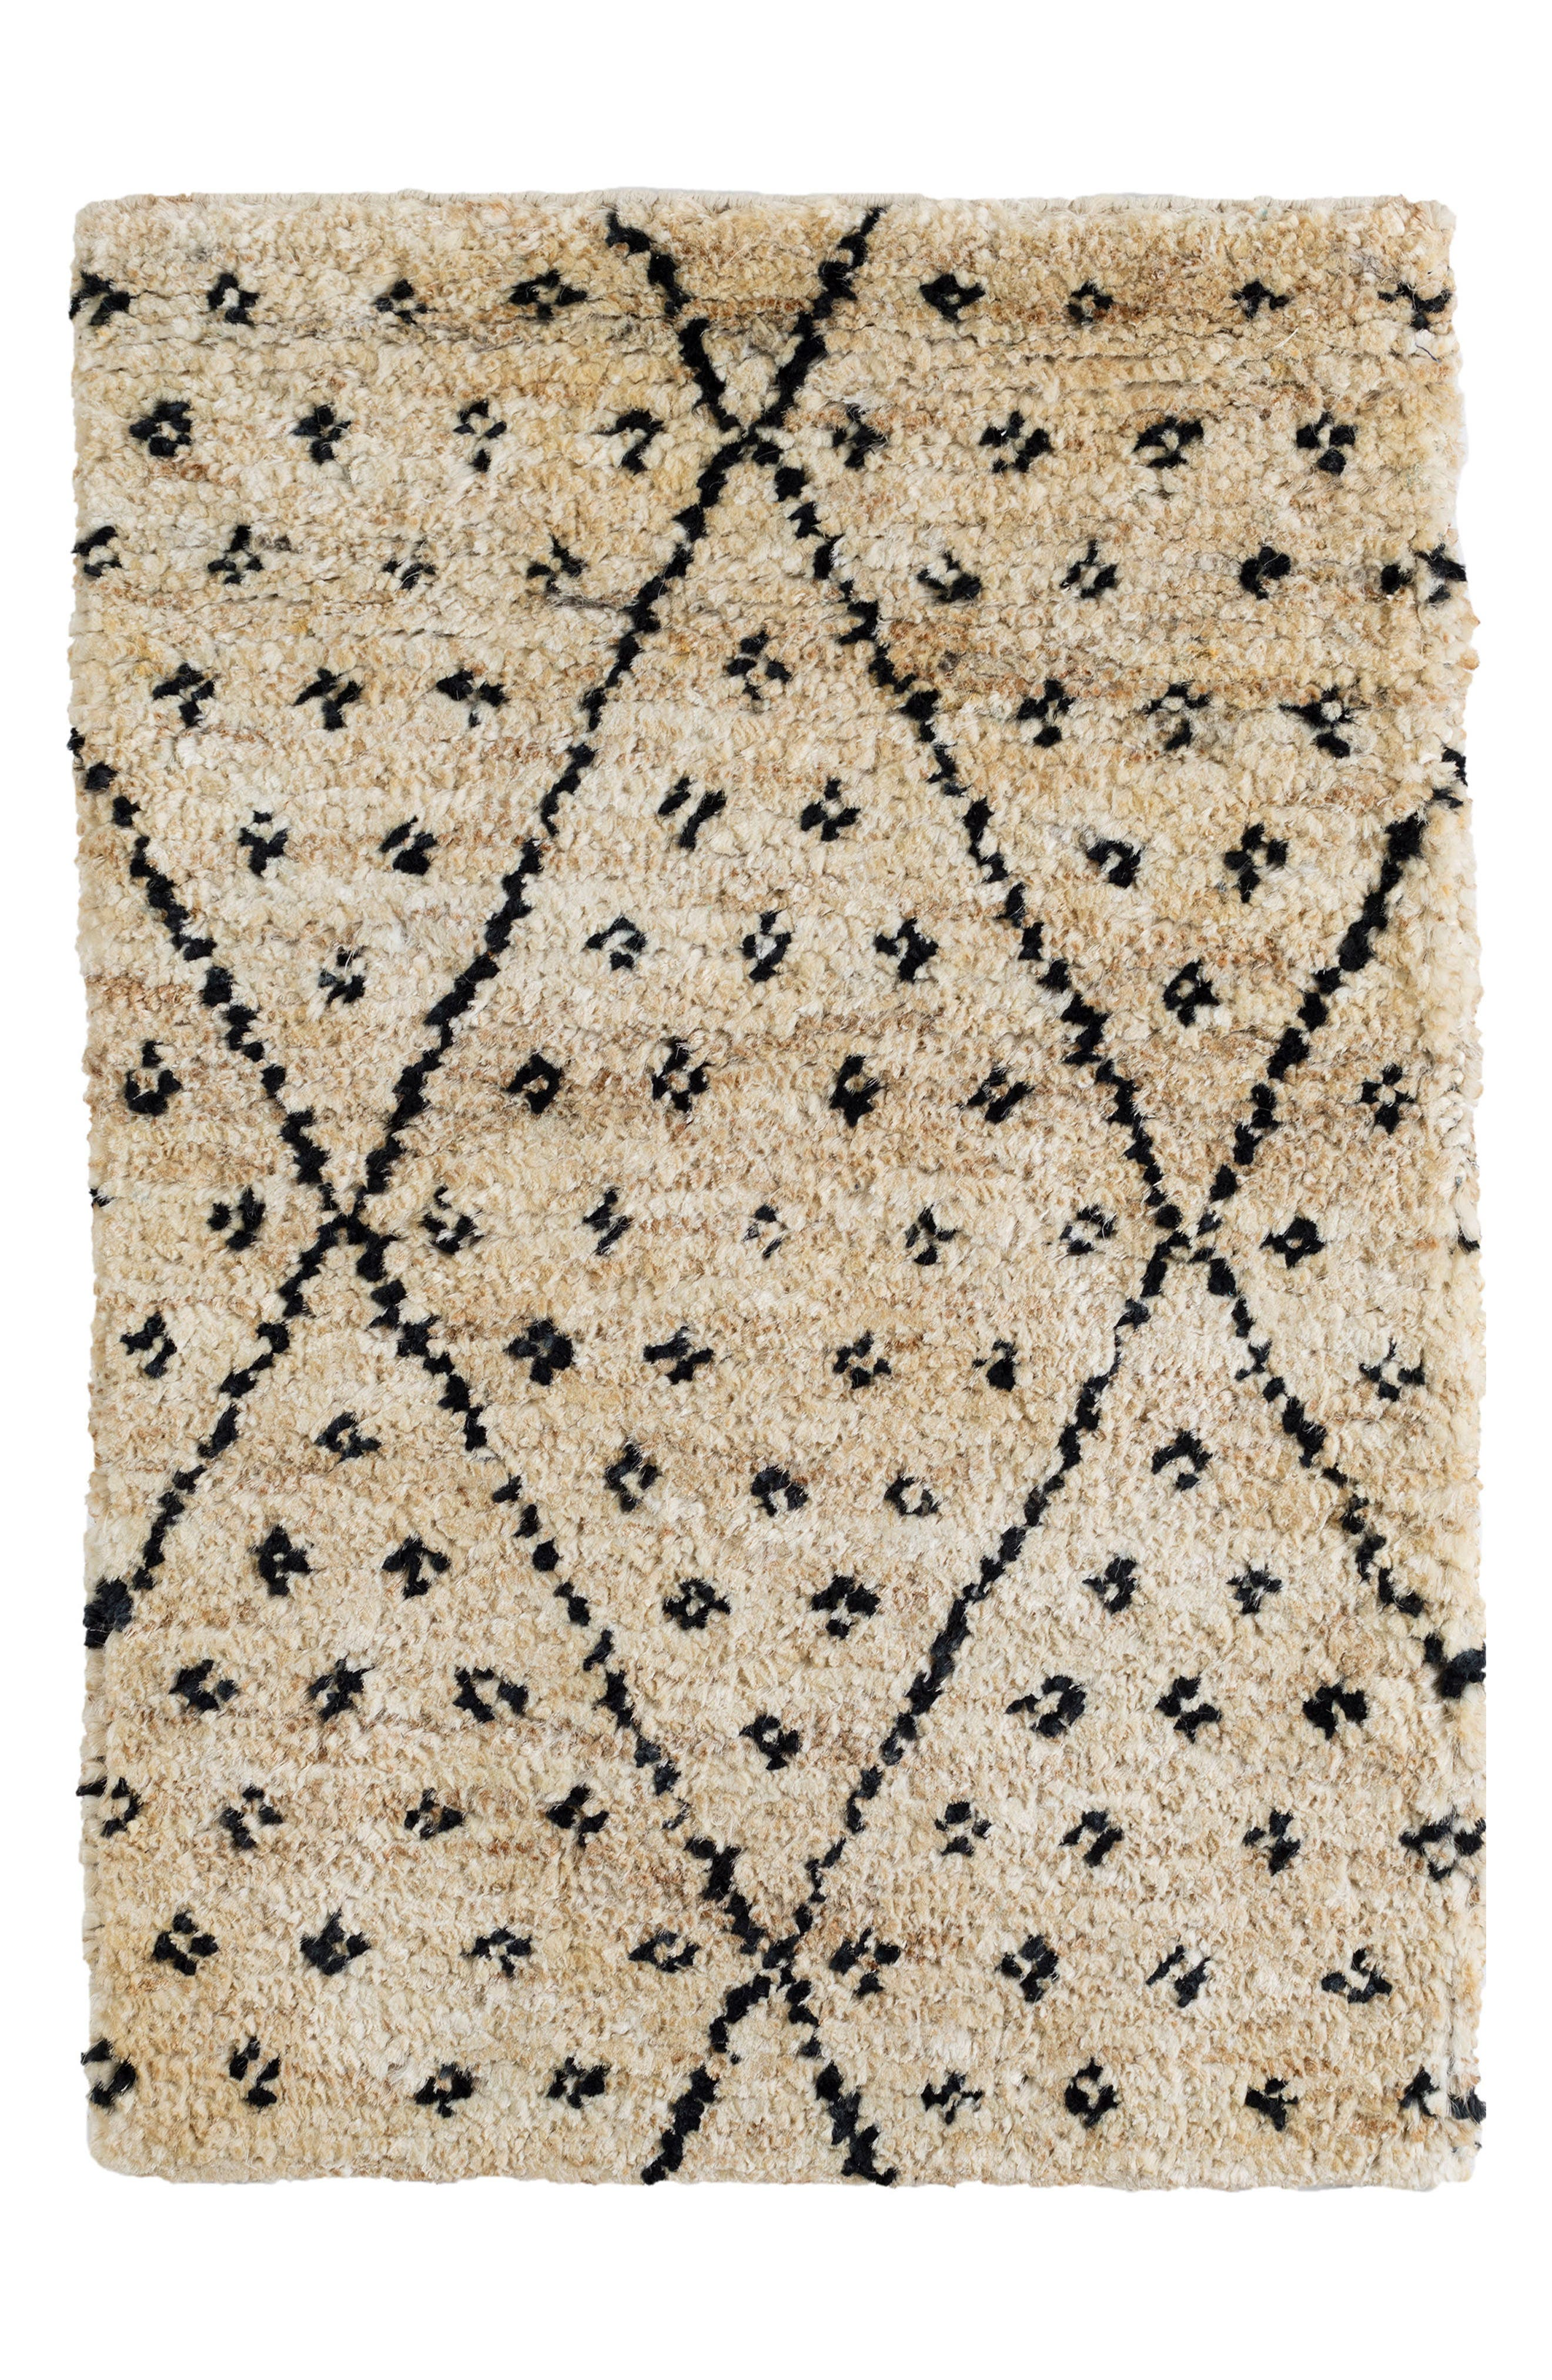 Doti Hand Knotted Jute & Cotton Rug,                         Main,                         color, Black